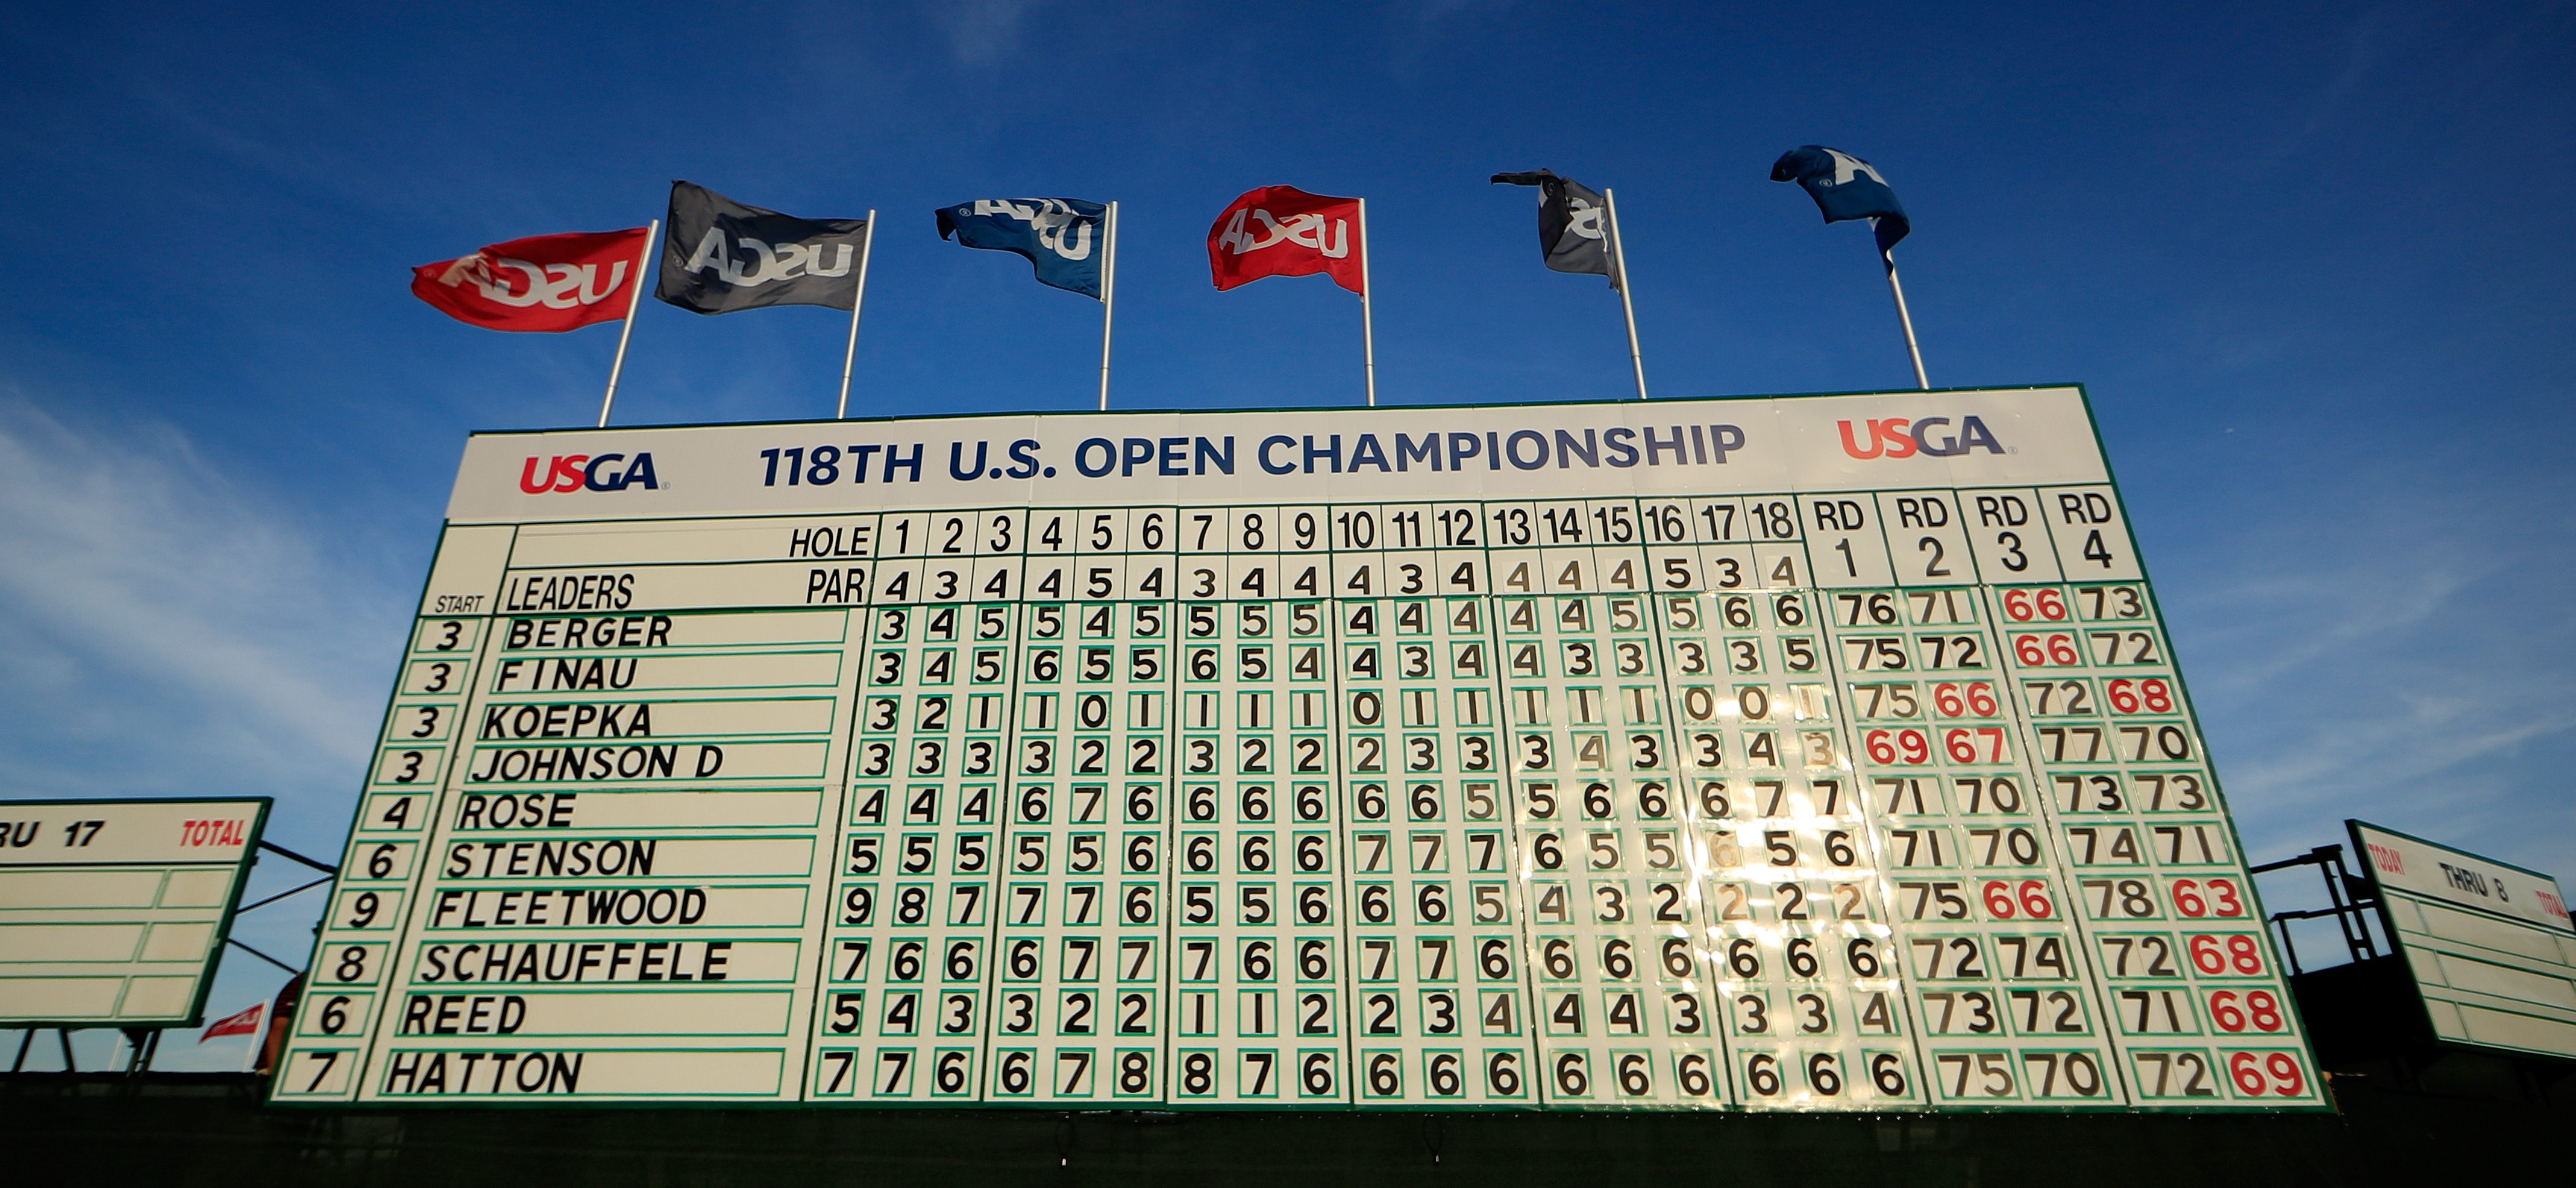 SOUTHAMPTON, NY - JUNE 17: The final leaderboard is displayed during the final round of the 2018 U.S. Open at Shinnecock Hills Golf Club on June 17, 2018 in Southampton, New York. (Photo by Mike Ehrmann/Getty Images)